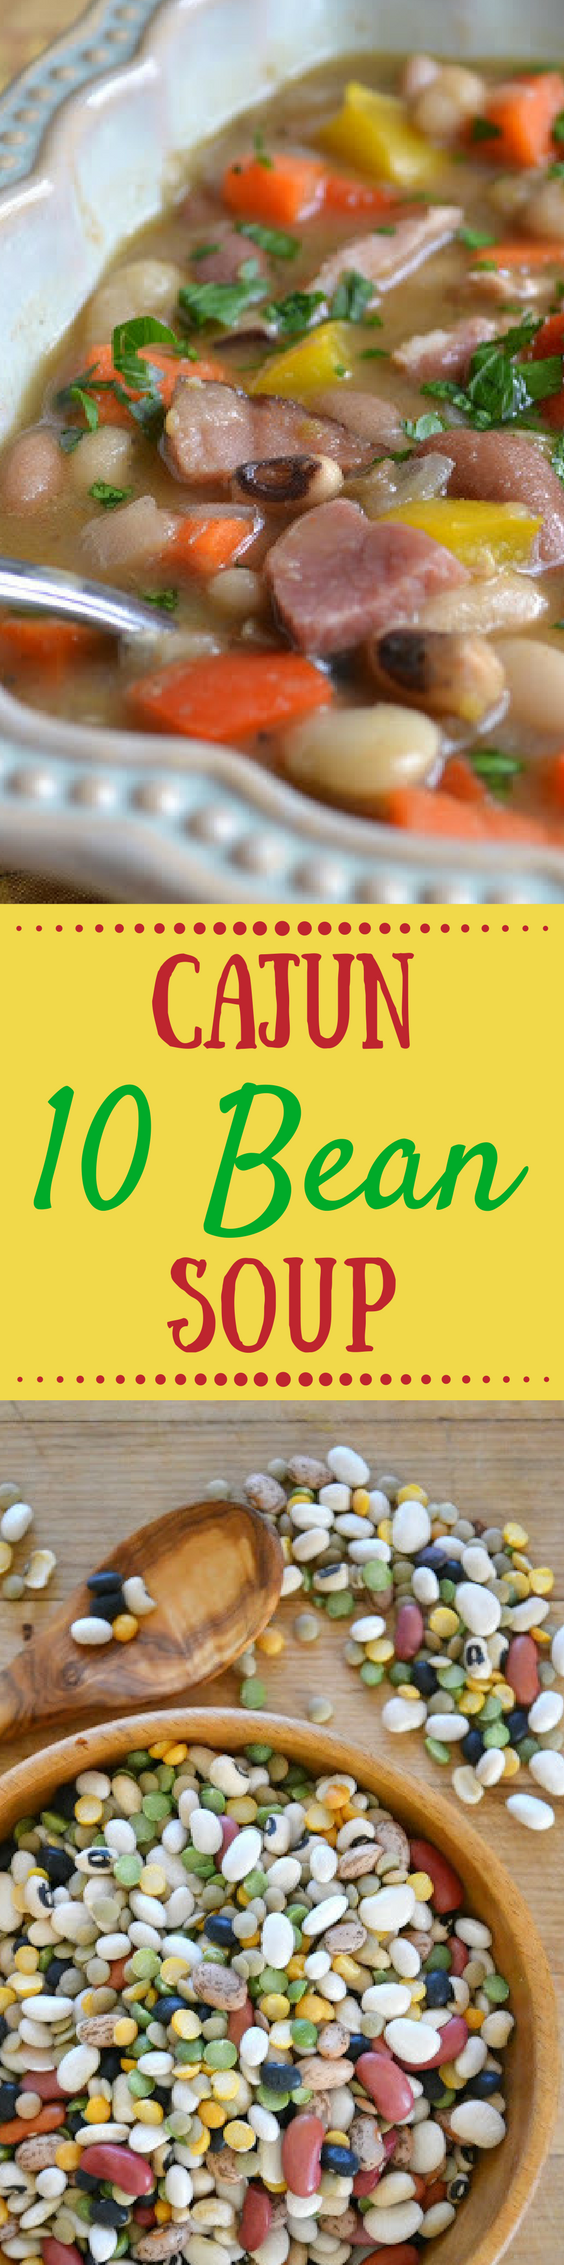 Cajun Ten Bean and Ham Soup is bursting with colorful flavor and hearty nutrition! Turn leftover ham into a meal everyone loves! #leftoverham #beans #driedbeans #10beansoup #7beansoup #dinner #hamsoup